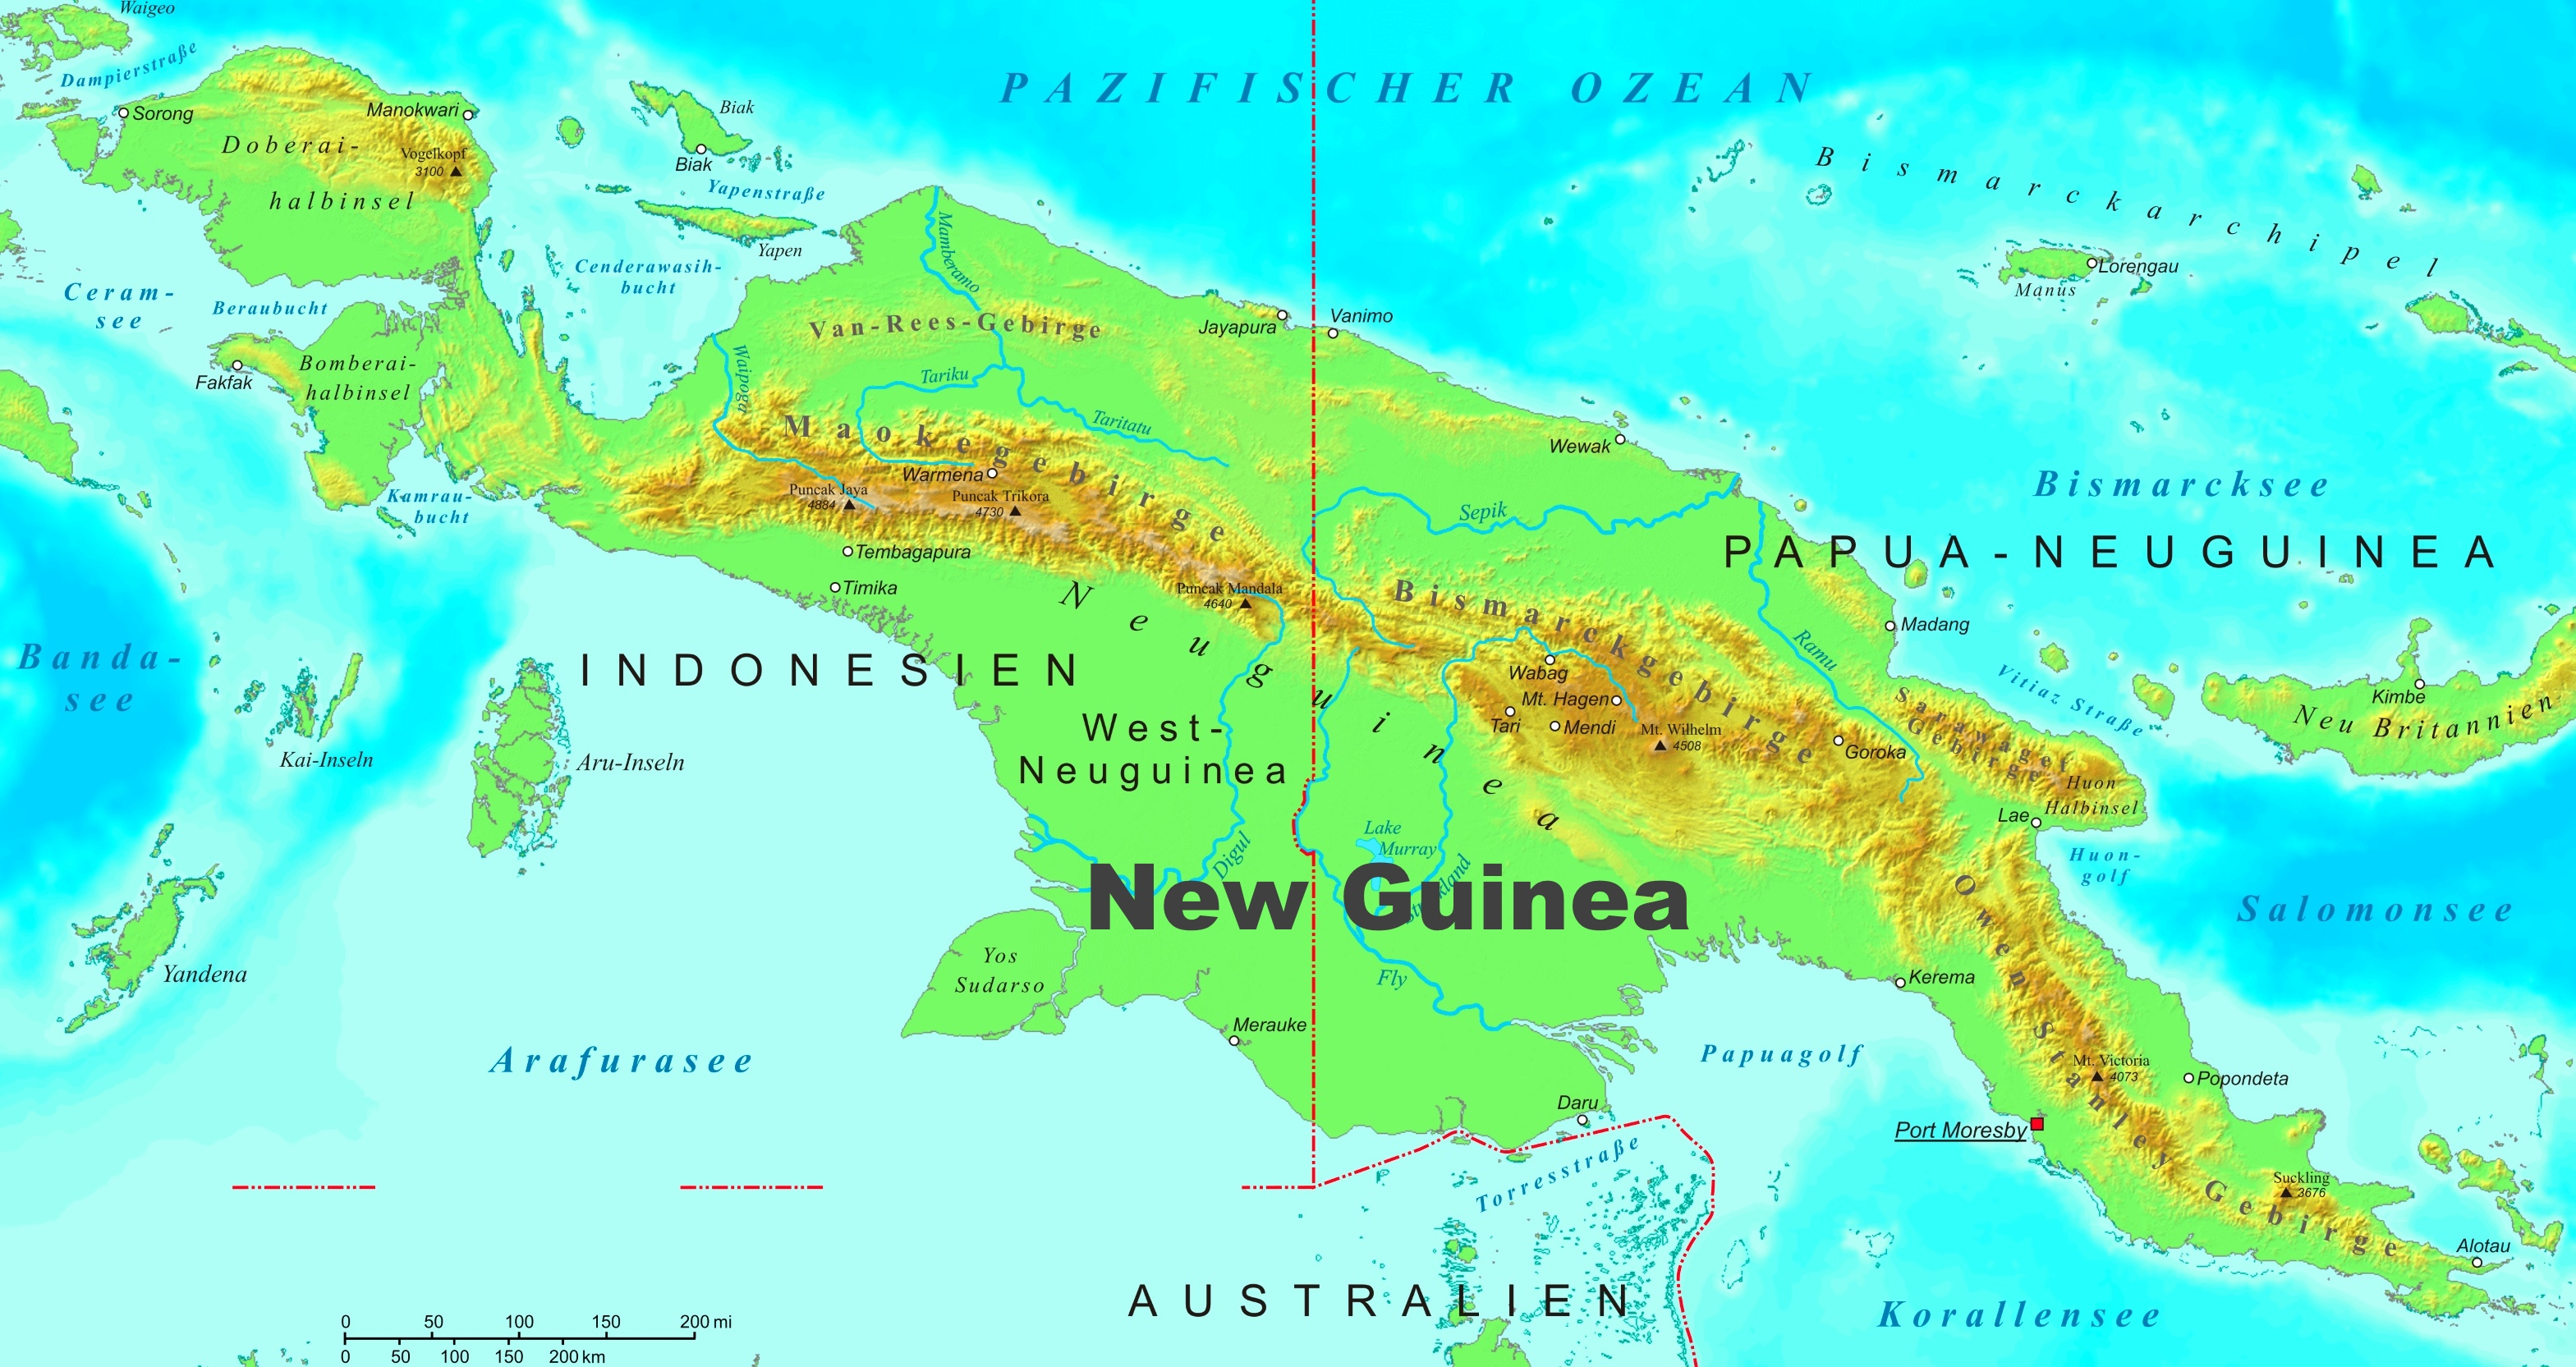 New Guinea Maps | Indonesia | Maps of New Guinea Island